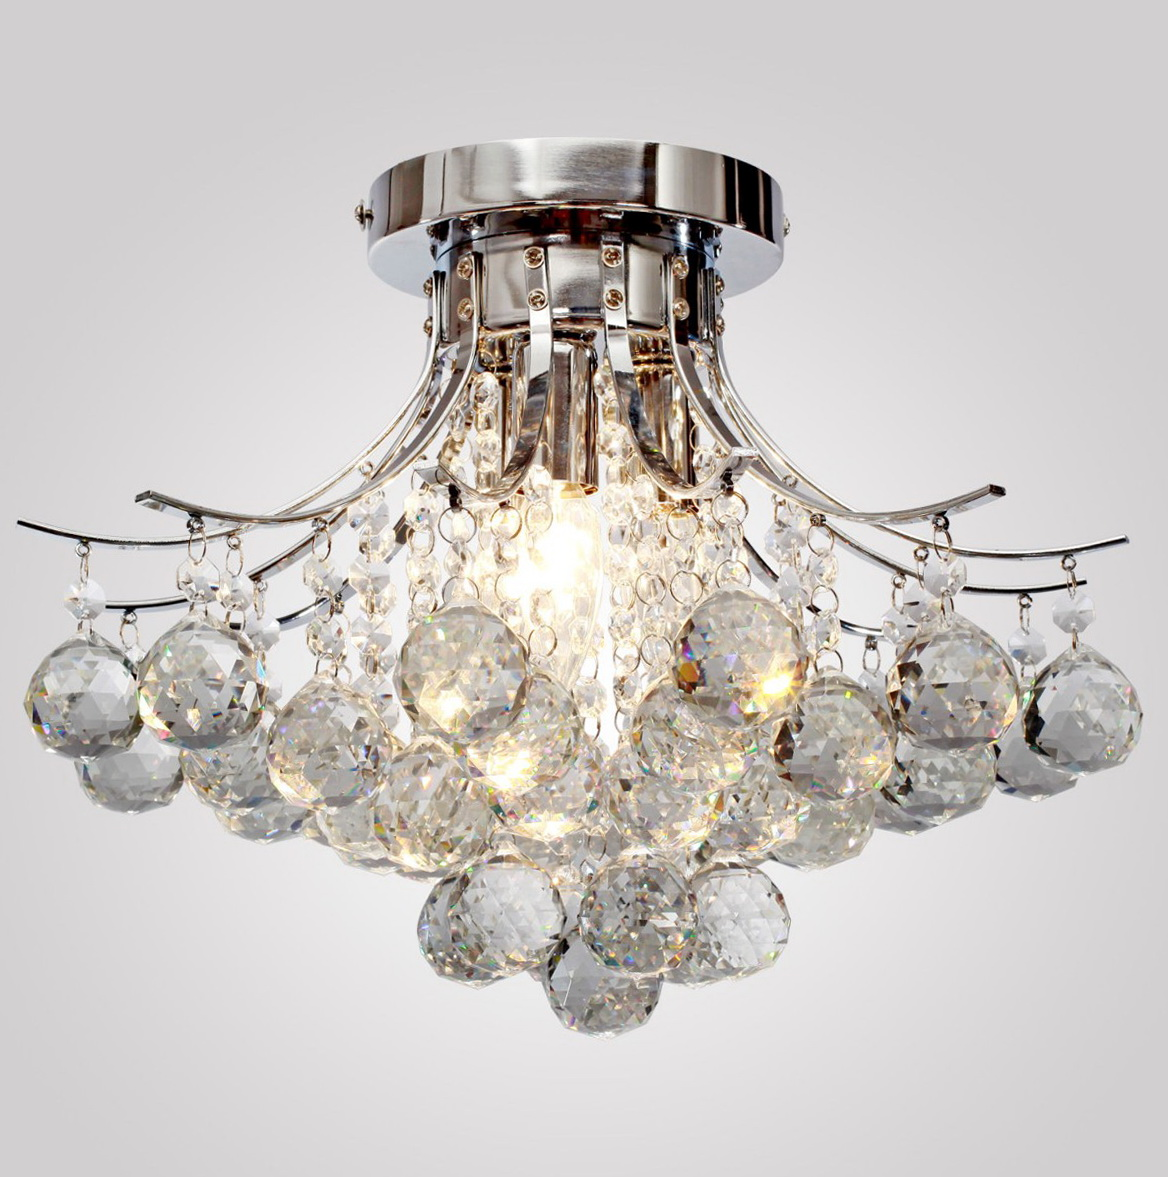 French Empire Crystal Chandelier | Home Depot Crystal Chandelier | Chandelier Crystals